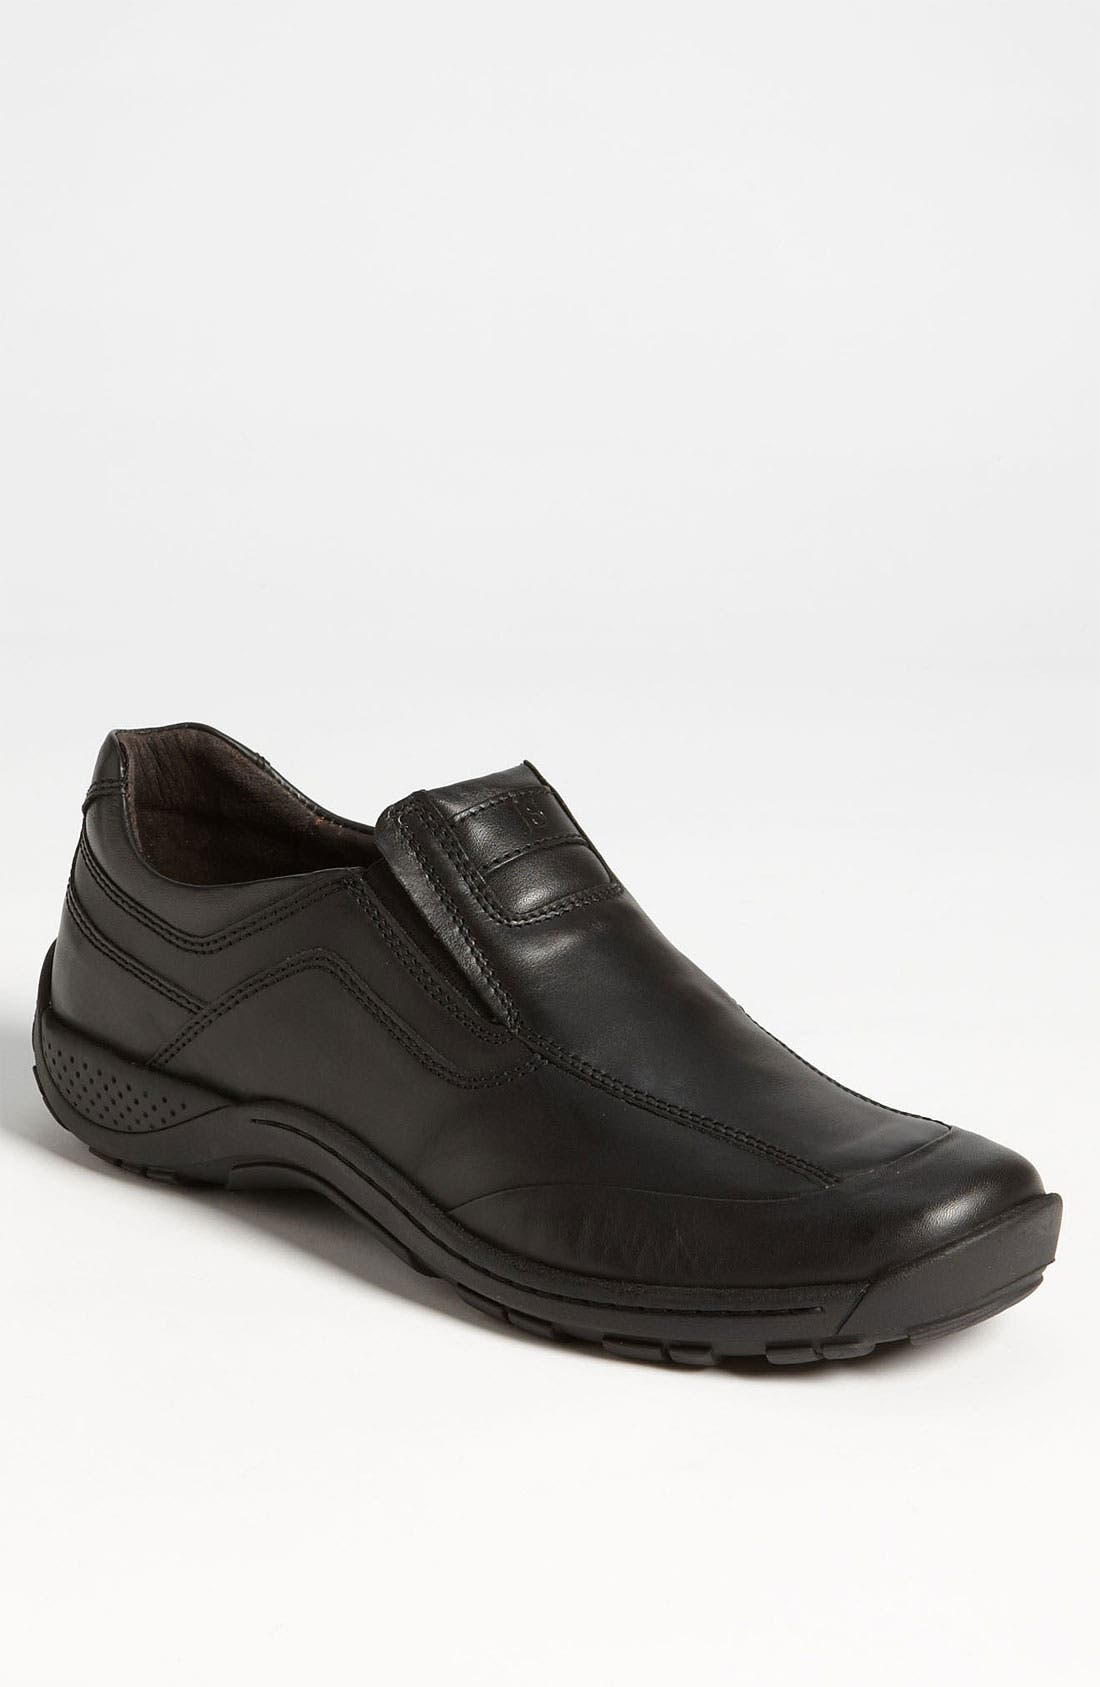 Alternate Image 1 Selected - Josef Seibel 'Nolan' Slip-On